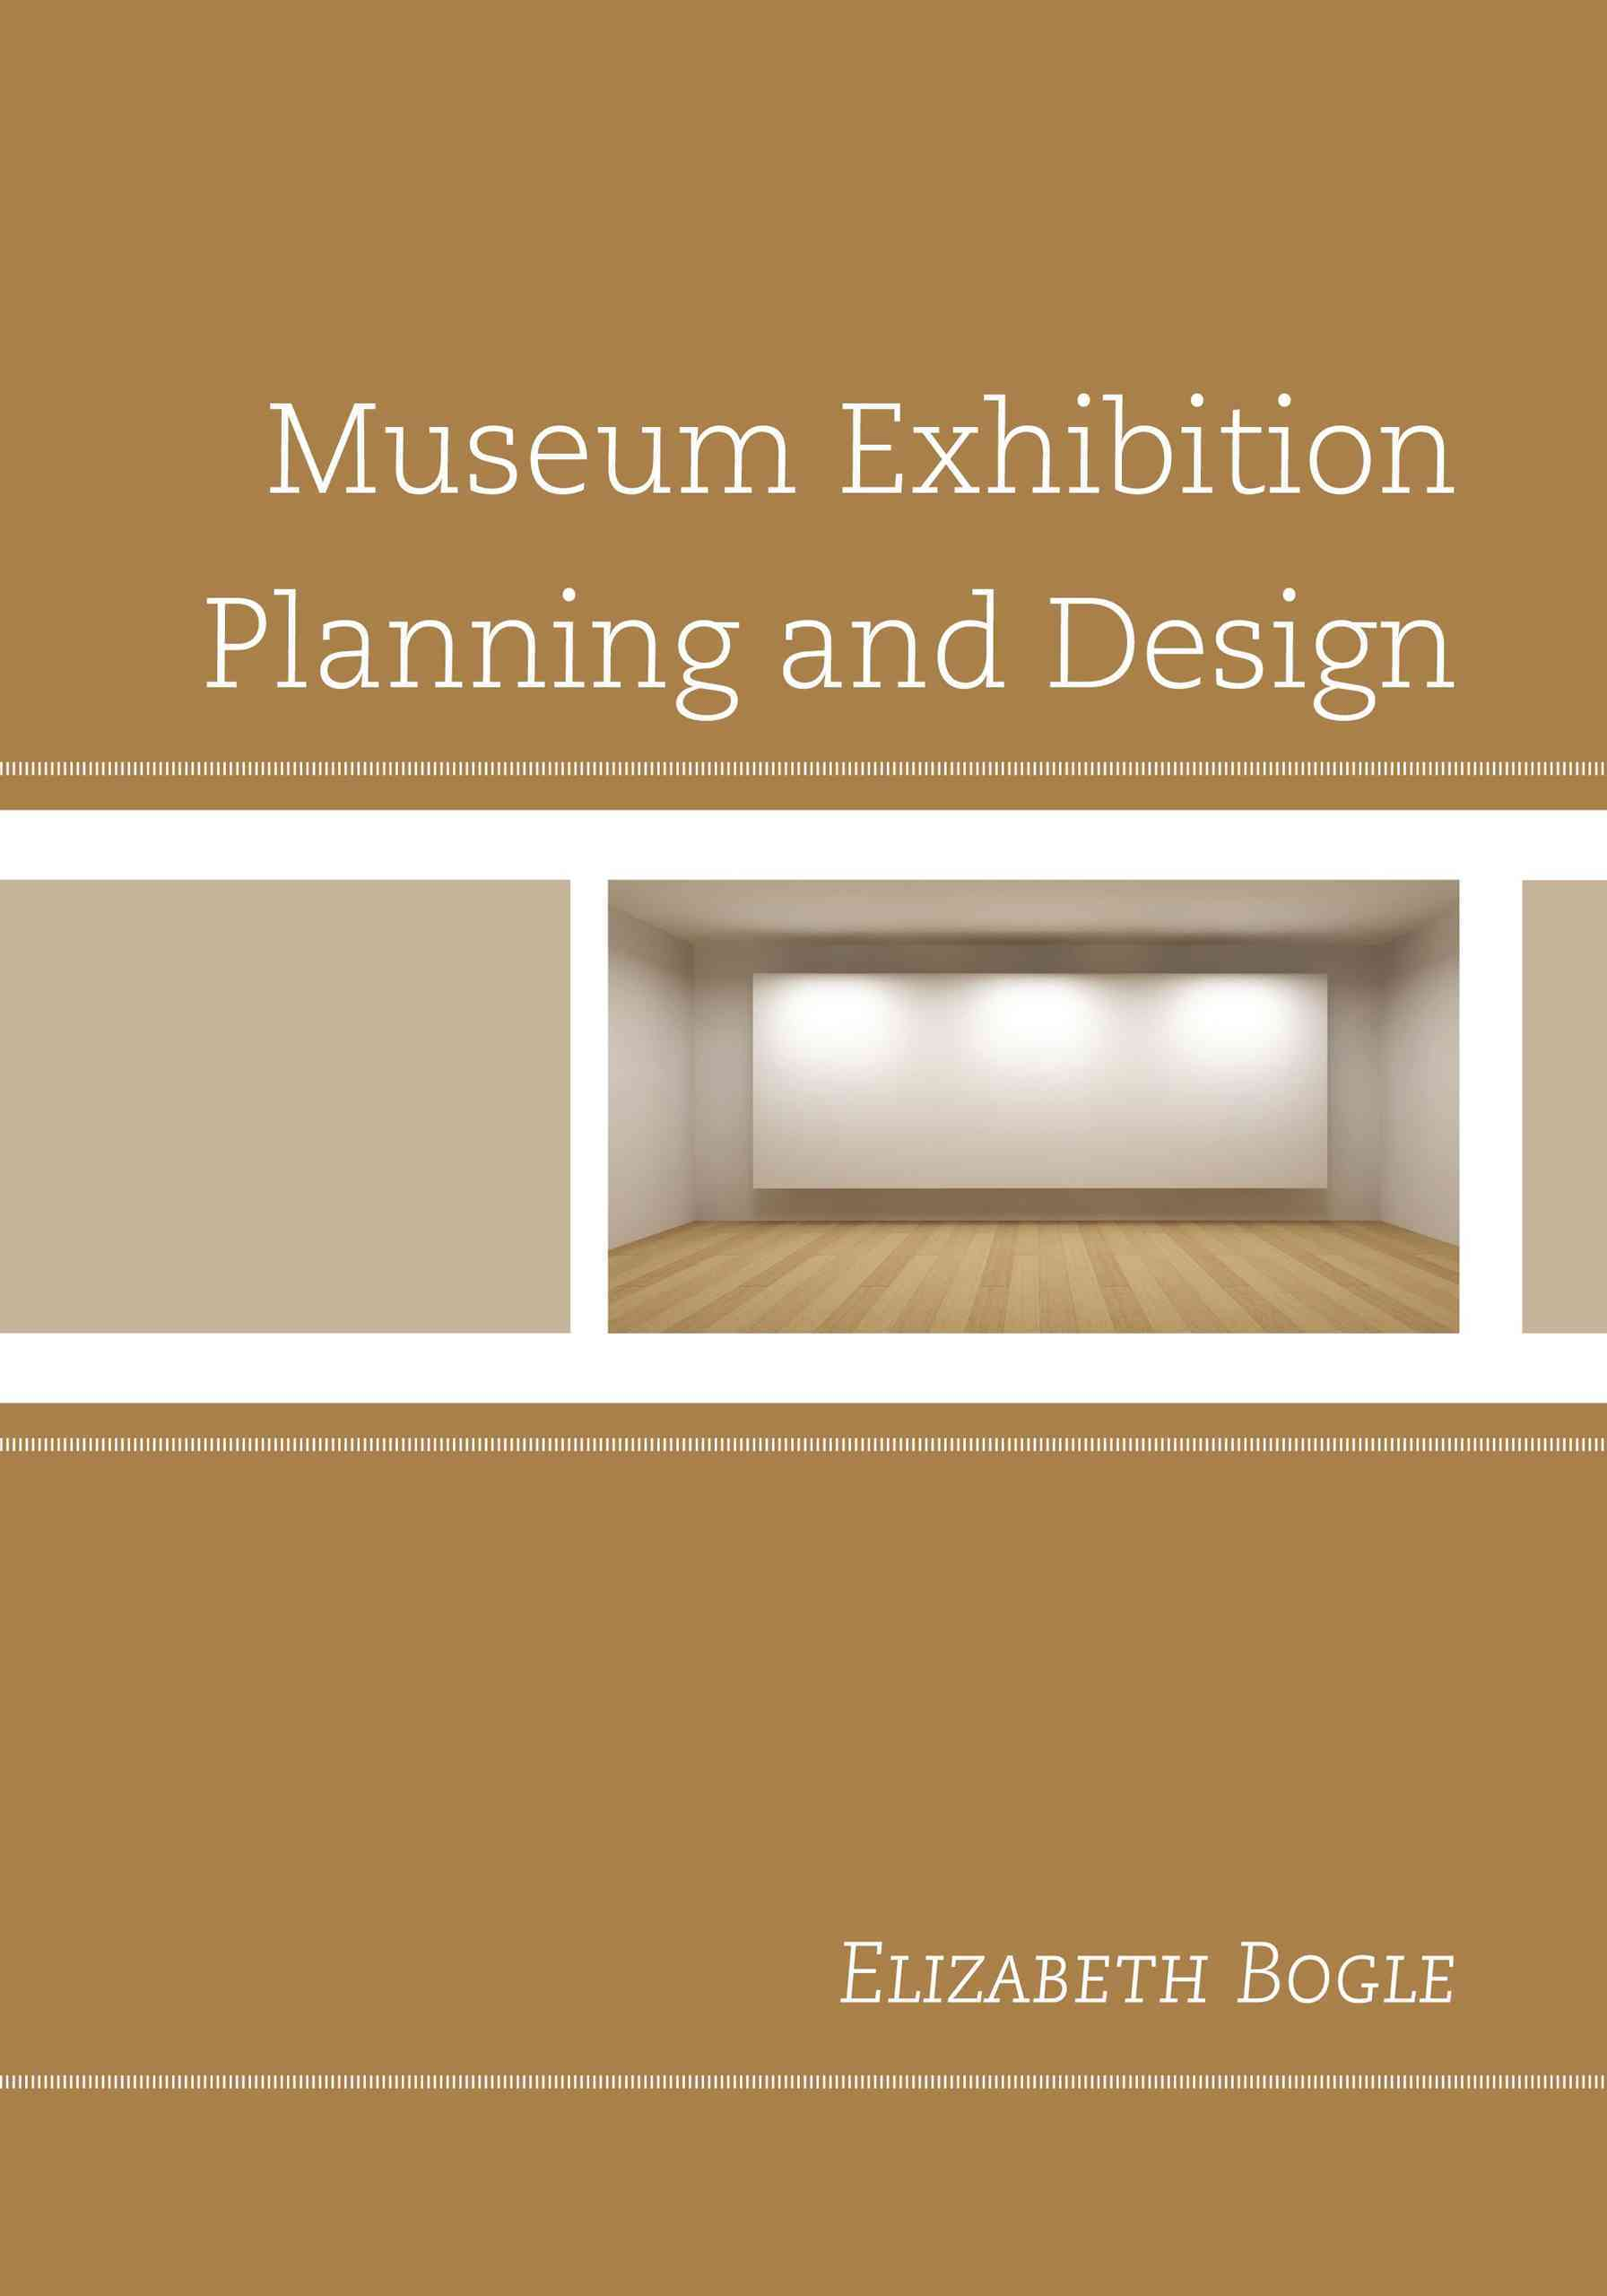 Museum Exhibition Planning By Bogle, Elizabeth